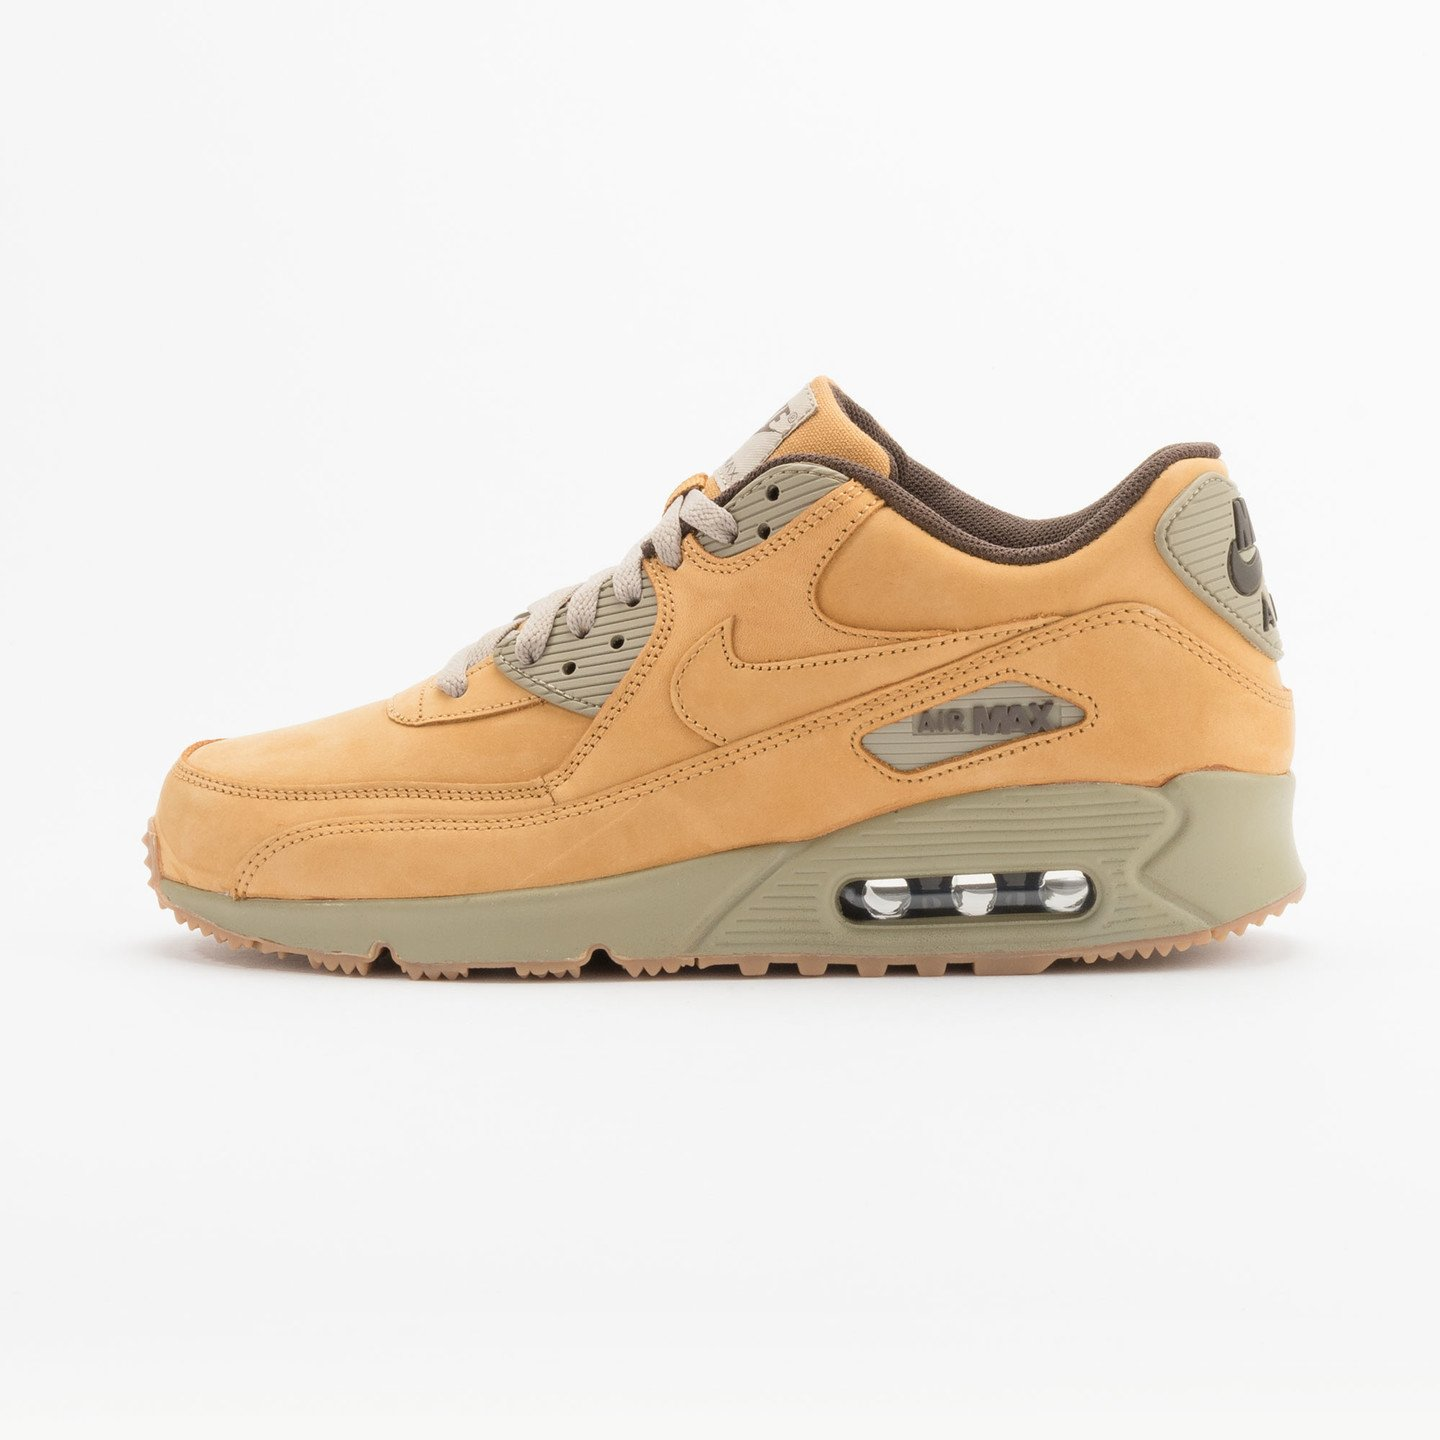 Nike Air Max 90 Winter Premium Bronze / Baroque Brown 683282-700-45.5